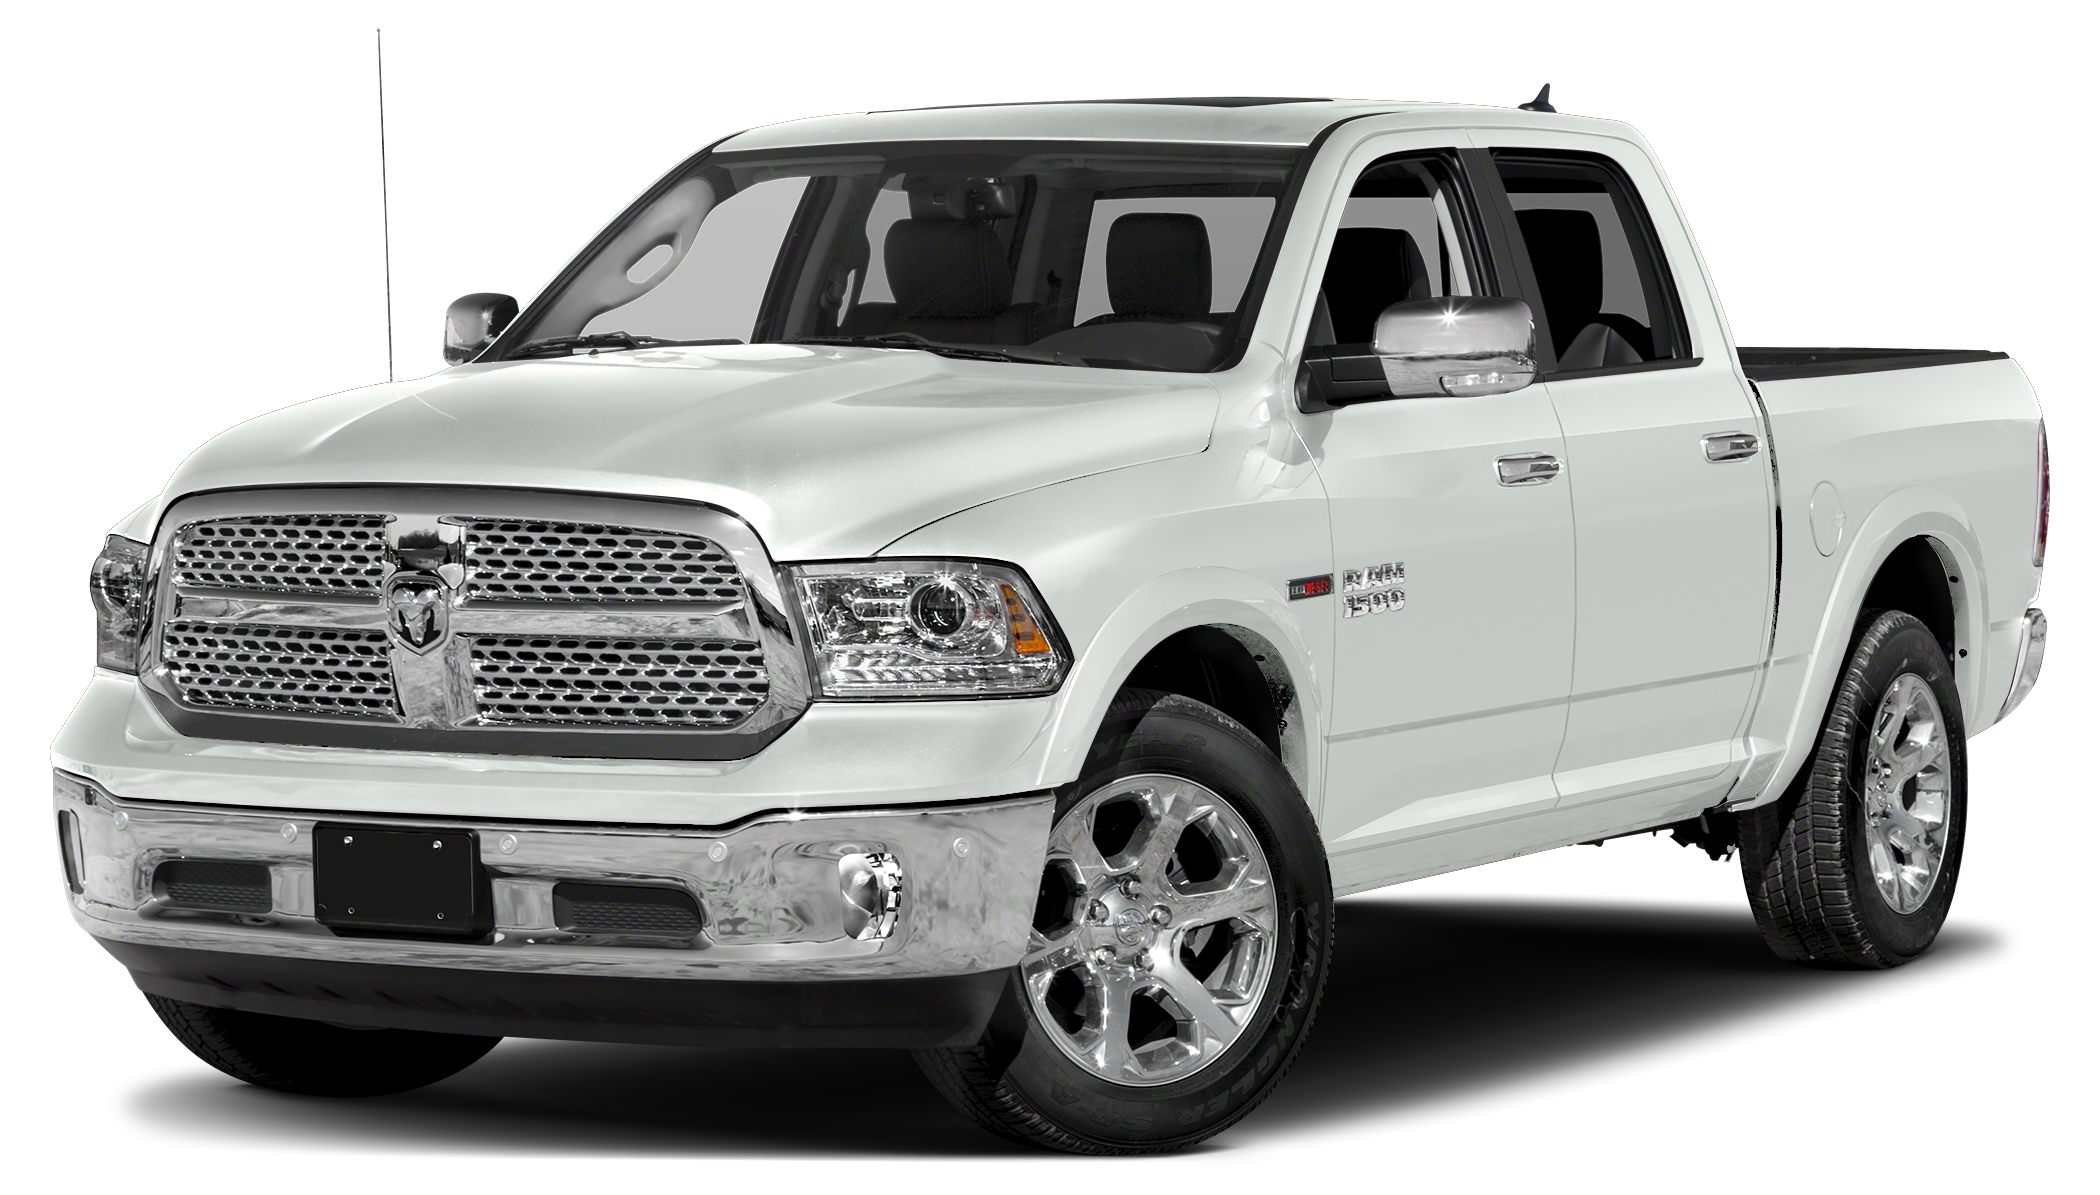 2017 RAM 1500 Laramie Navigation Short Bed Fresh arrival More pictures coming soon Are you int